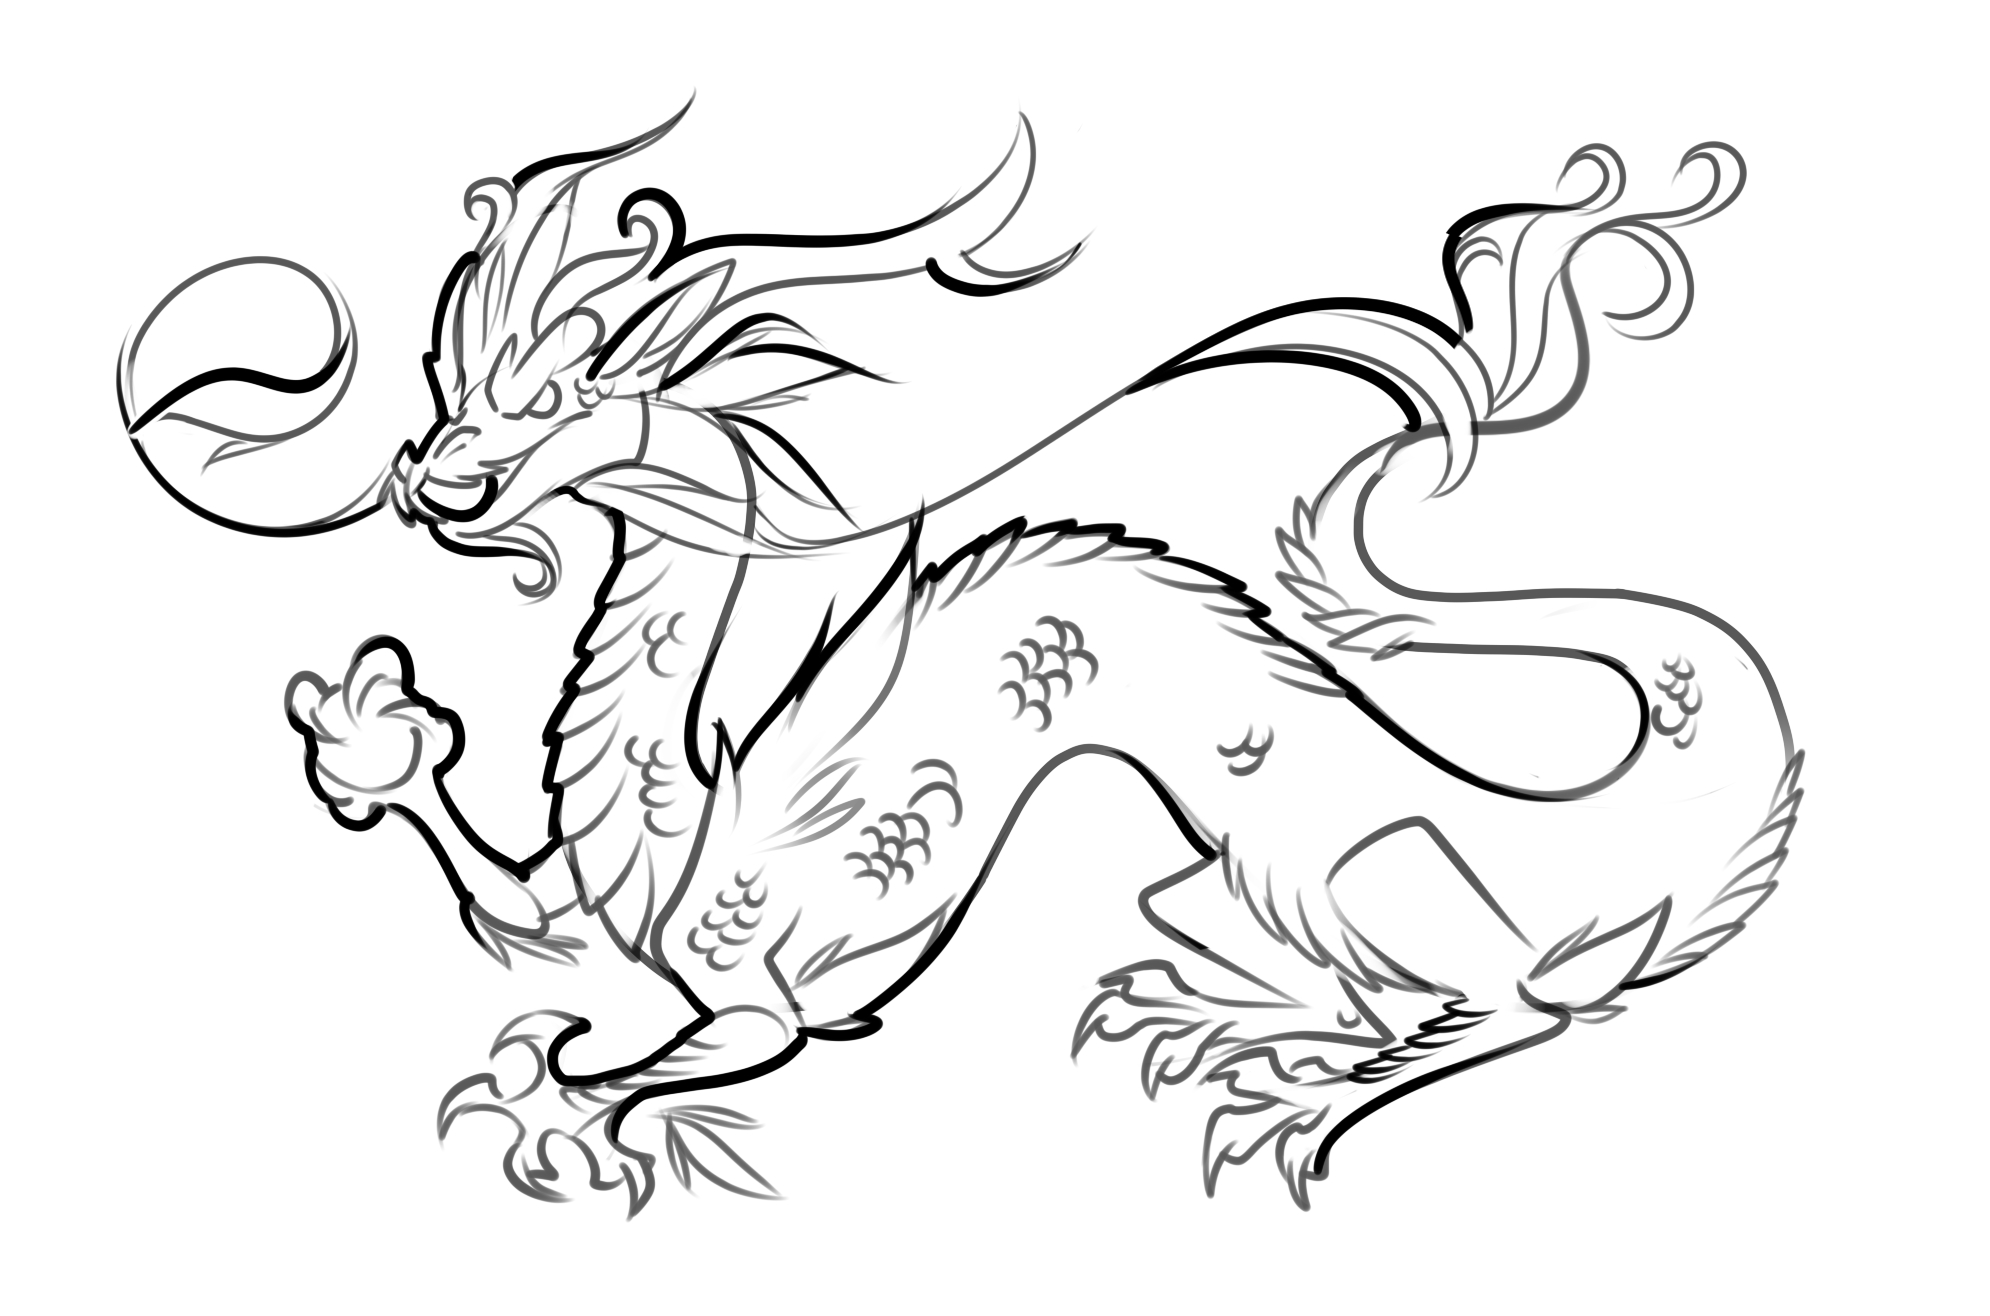 Chinese Dragon Coloring Pages  Download 4a - To print for your project